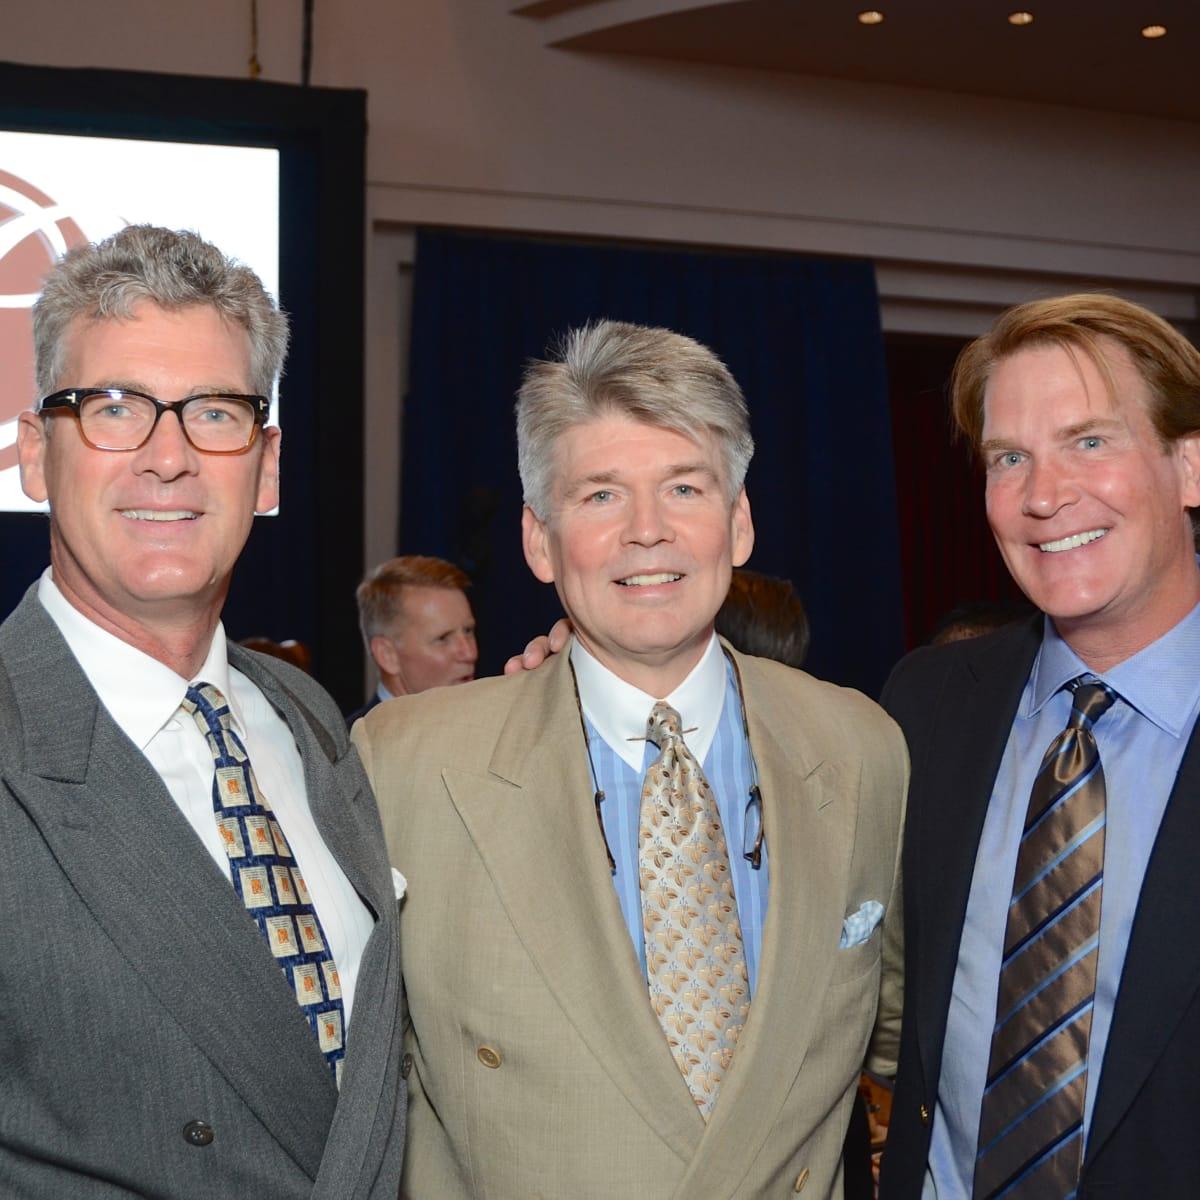 News, shelby, Legacy luncheon, Sept. 2015, Tom LeCloux, Dr. Steve Hamilton, George Lancaster